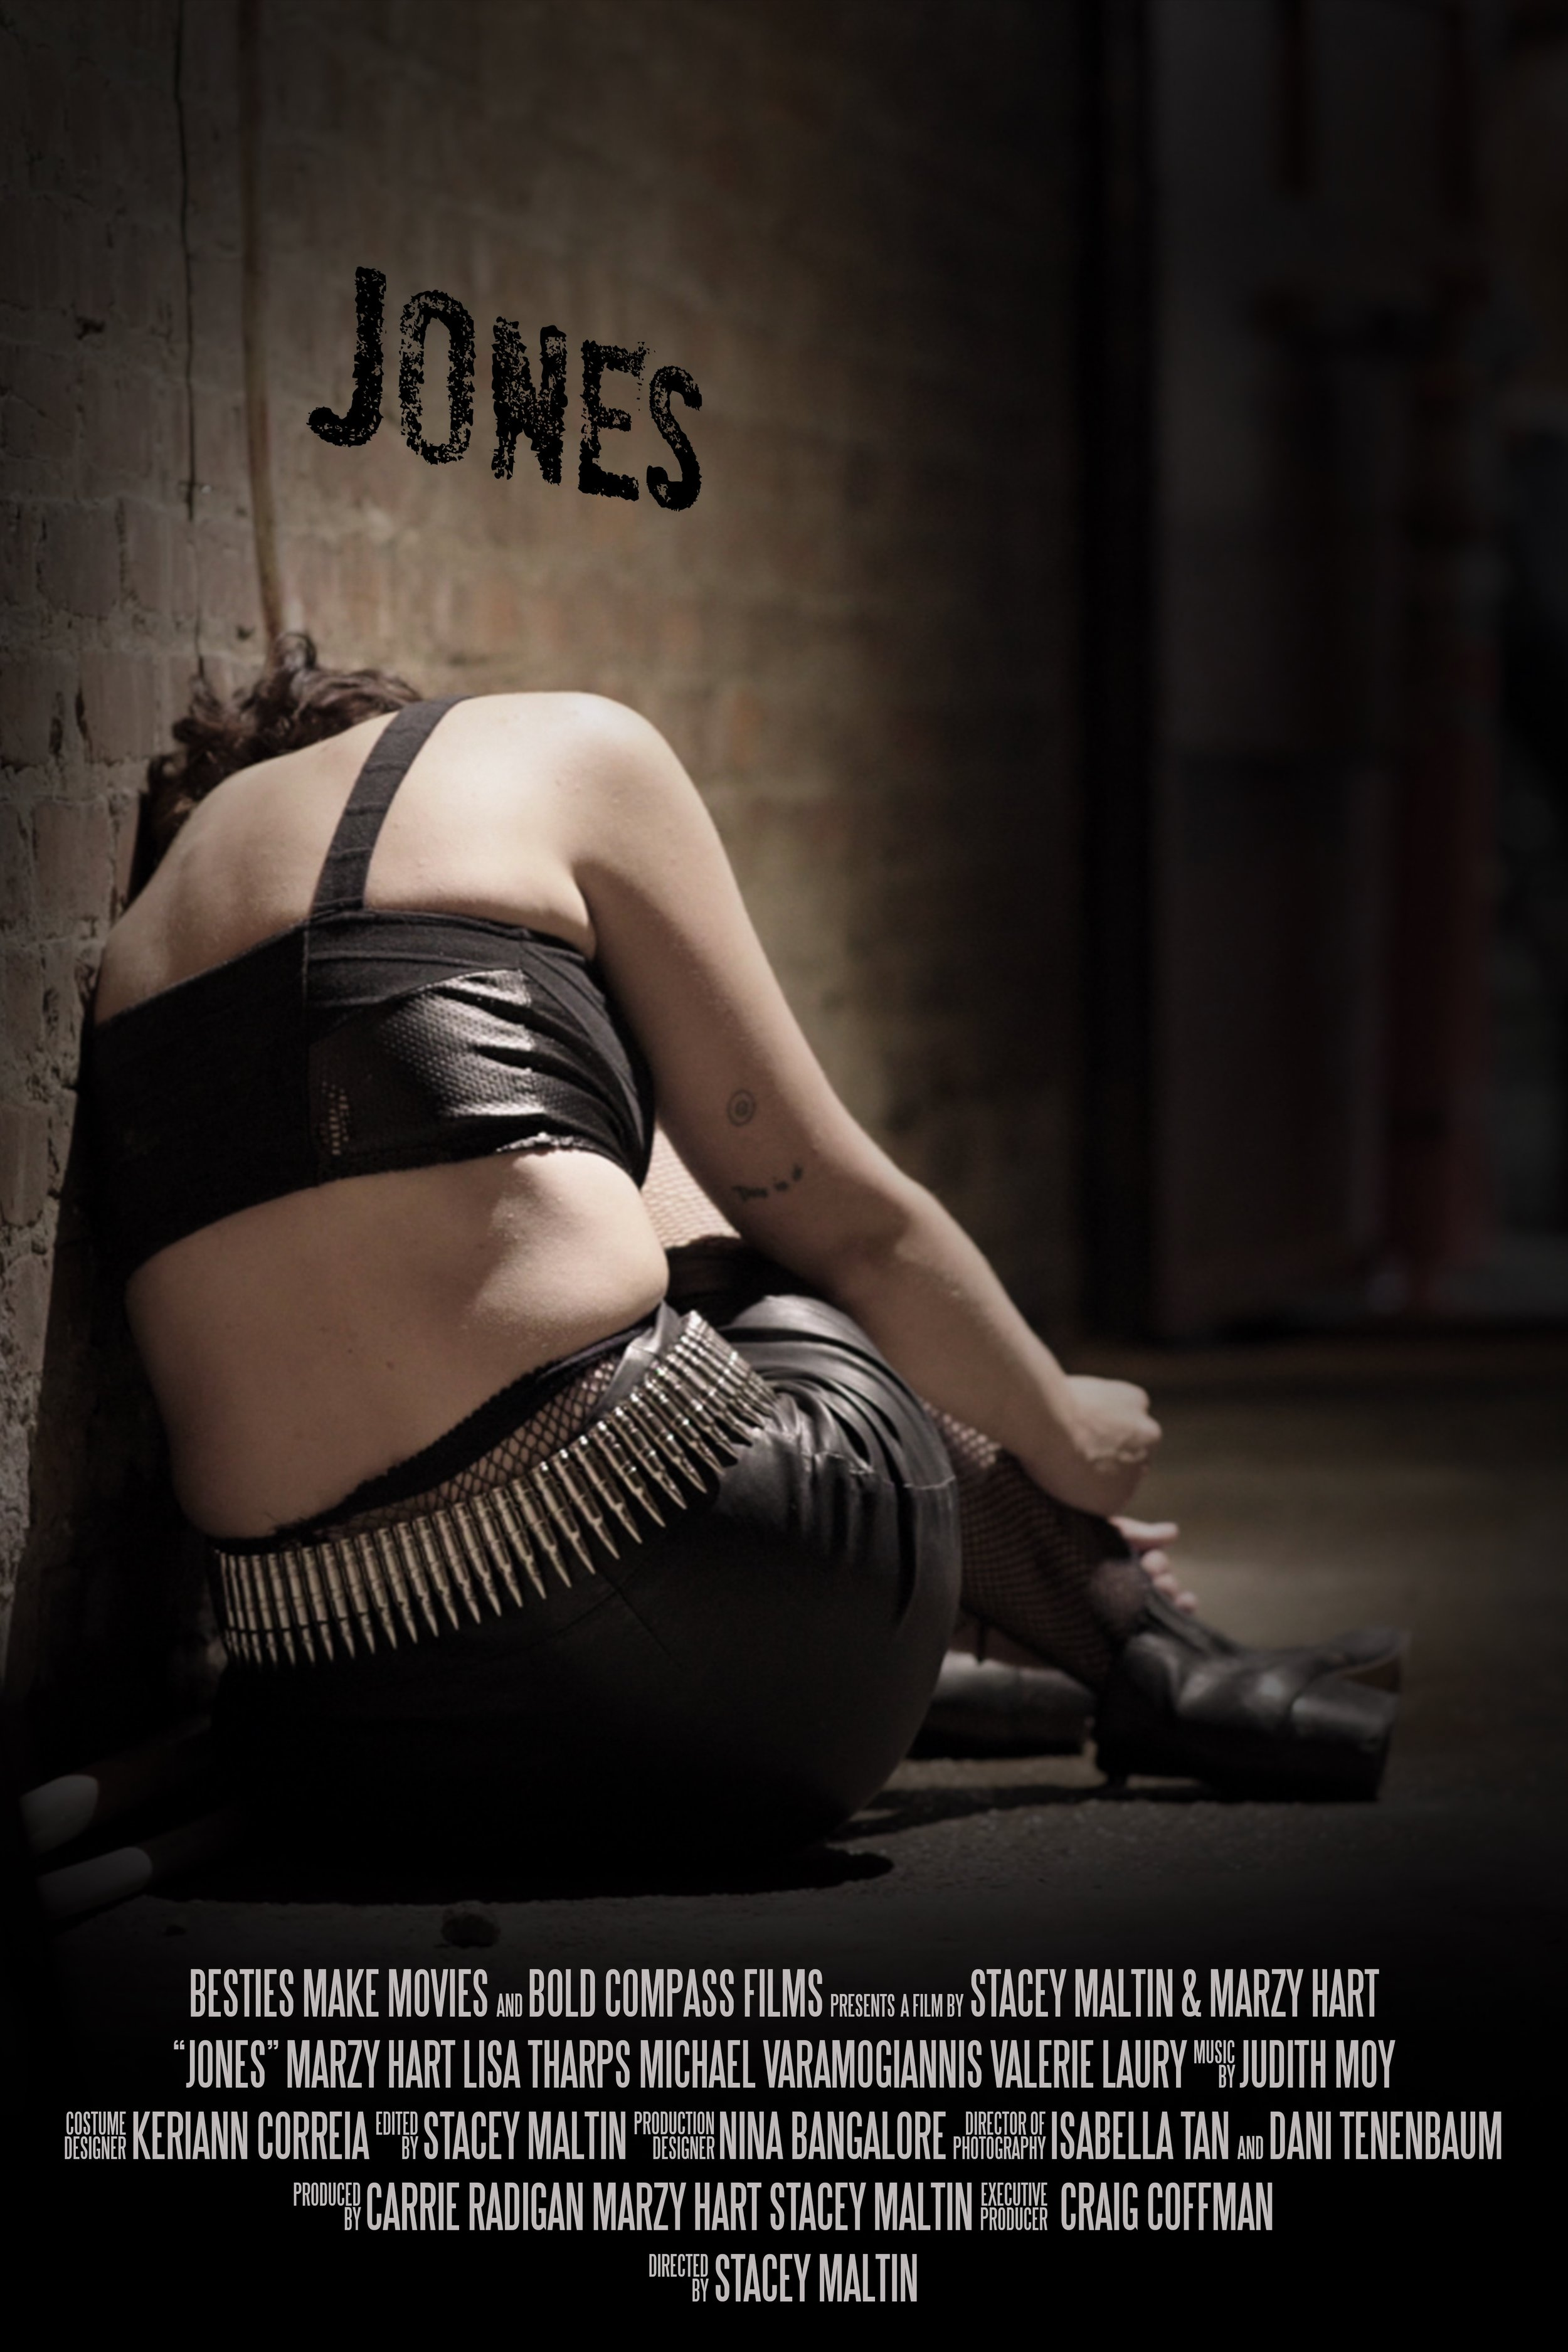 """""""Jones"""" - """"Jones"""" (starring and written by Marzy Hart), is a very honest short film about a young woman's (Jones) journey of breaking her alcohol addiction and getting help. It has been reported that over 10 million young Americans need treatment for addictions, and a lot of us just aren't getting the help. Whether it's stigma, self-doubt, funding, or just straight up denial, we just aren't asking for help.The synopsis for Jones is: """"Having fallen under alcohol's magic, Jones decides to break the curse and get her life back on track. Every minute feels like torture."""" And every minute does feel like torture, at least at first. There was a line in the film that shook me to my core: """"The more days you get, the more you'll realize about yourself, and what you're hiding from. You're not going to like everything that comes to you.""""""""Jones"""" stars Marzy Hart, who also wrote the script and produced it- along with Stacey Maltin, and Carrie Radigan,. It was directed by Stacey Maltin, with cinematography by Isabella Tan and Dani Tenenbaum."""